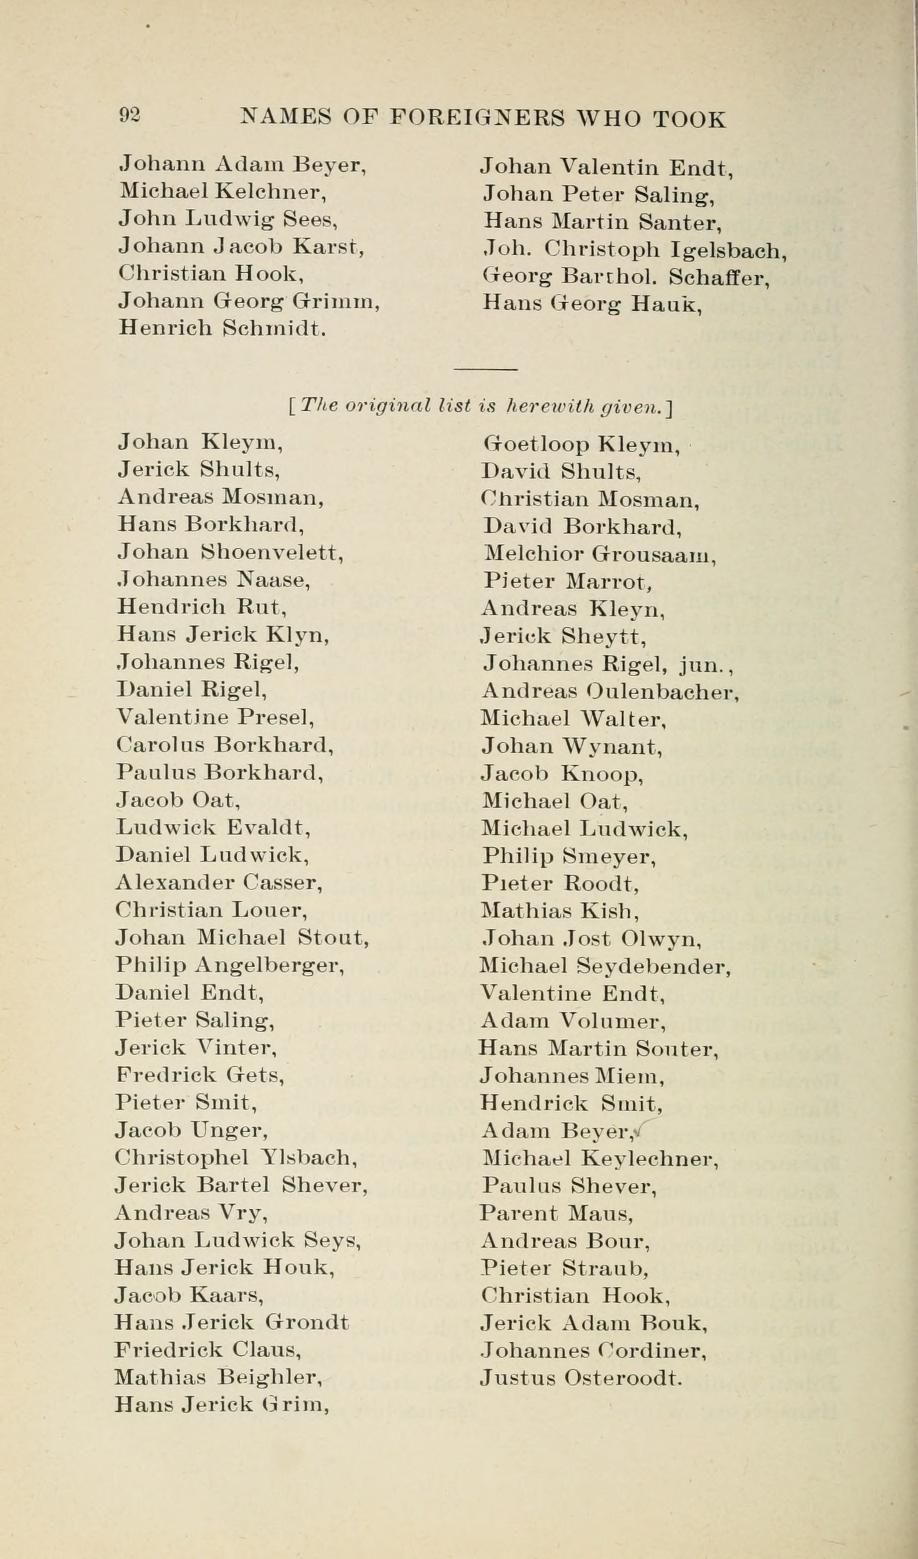 Names Of Foreigners Who Took The Oath Of Allegiance To The Province And State Of Pennsylvania 1727 1775 With The Foreign Arrivals 1786 1808 Egle William H The Borrowers Internet Archive Christian Hook